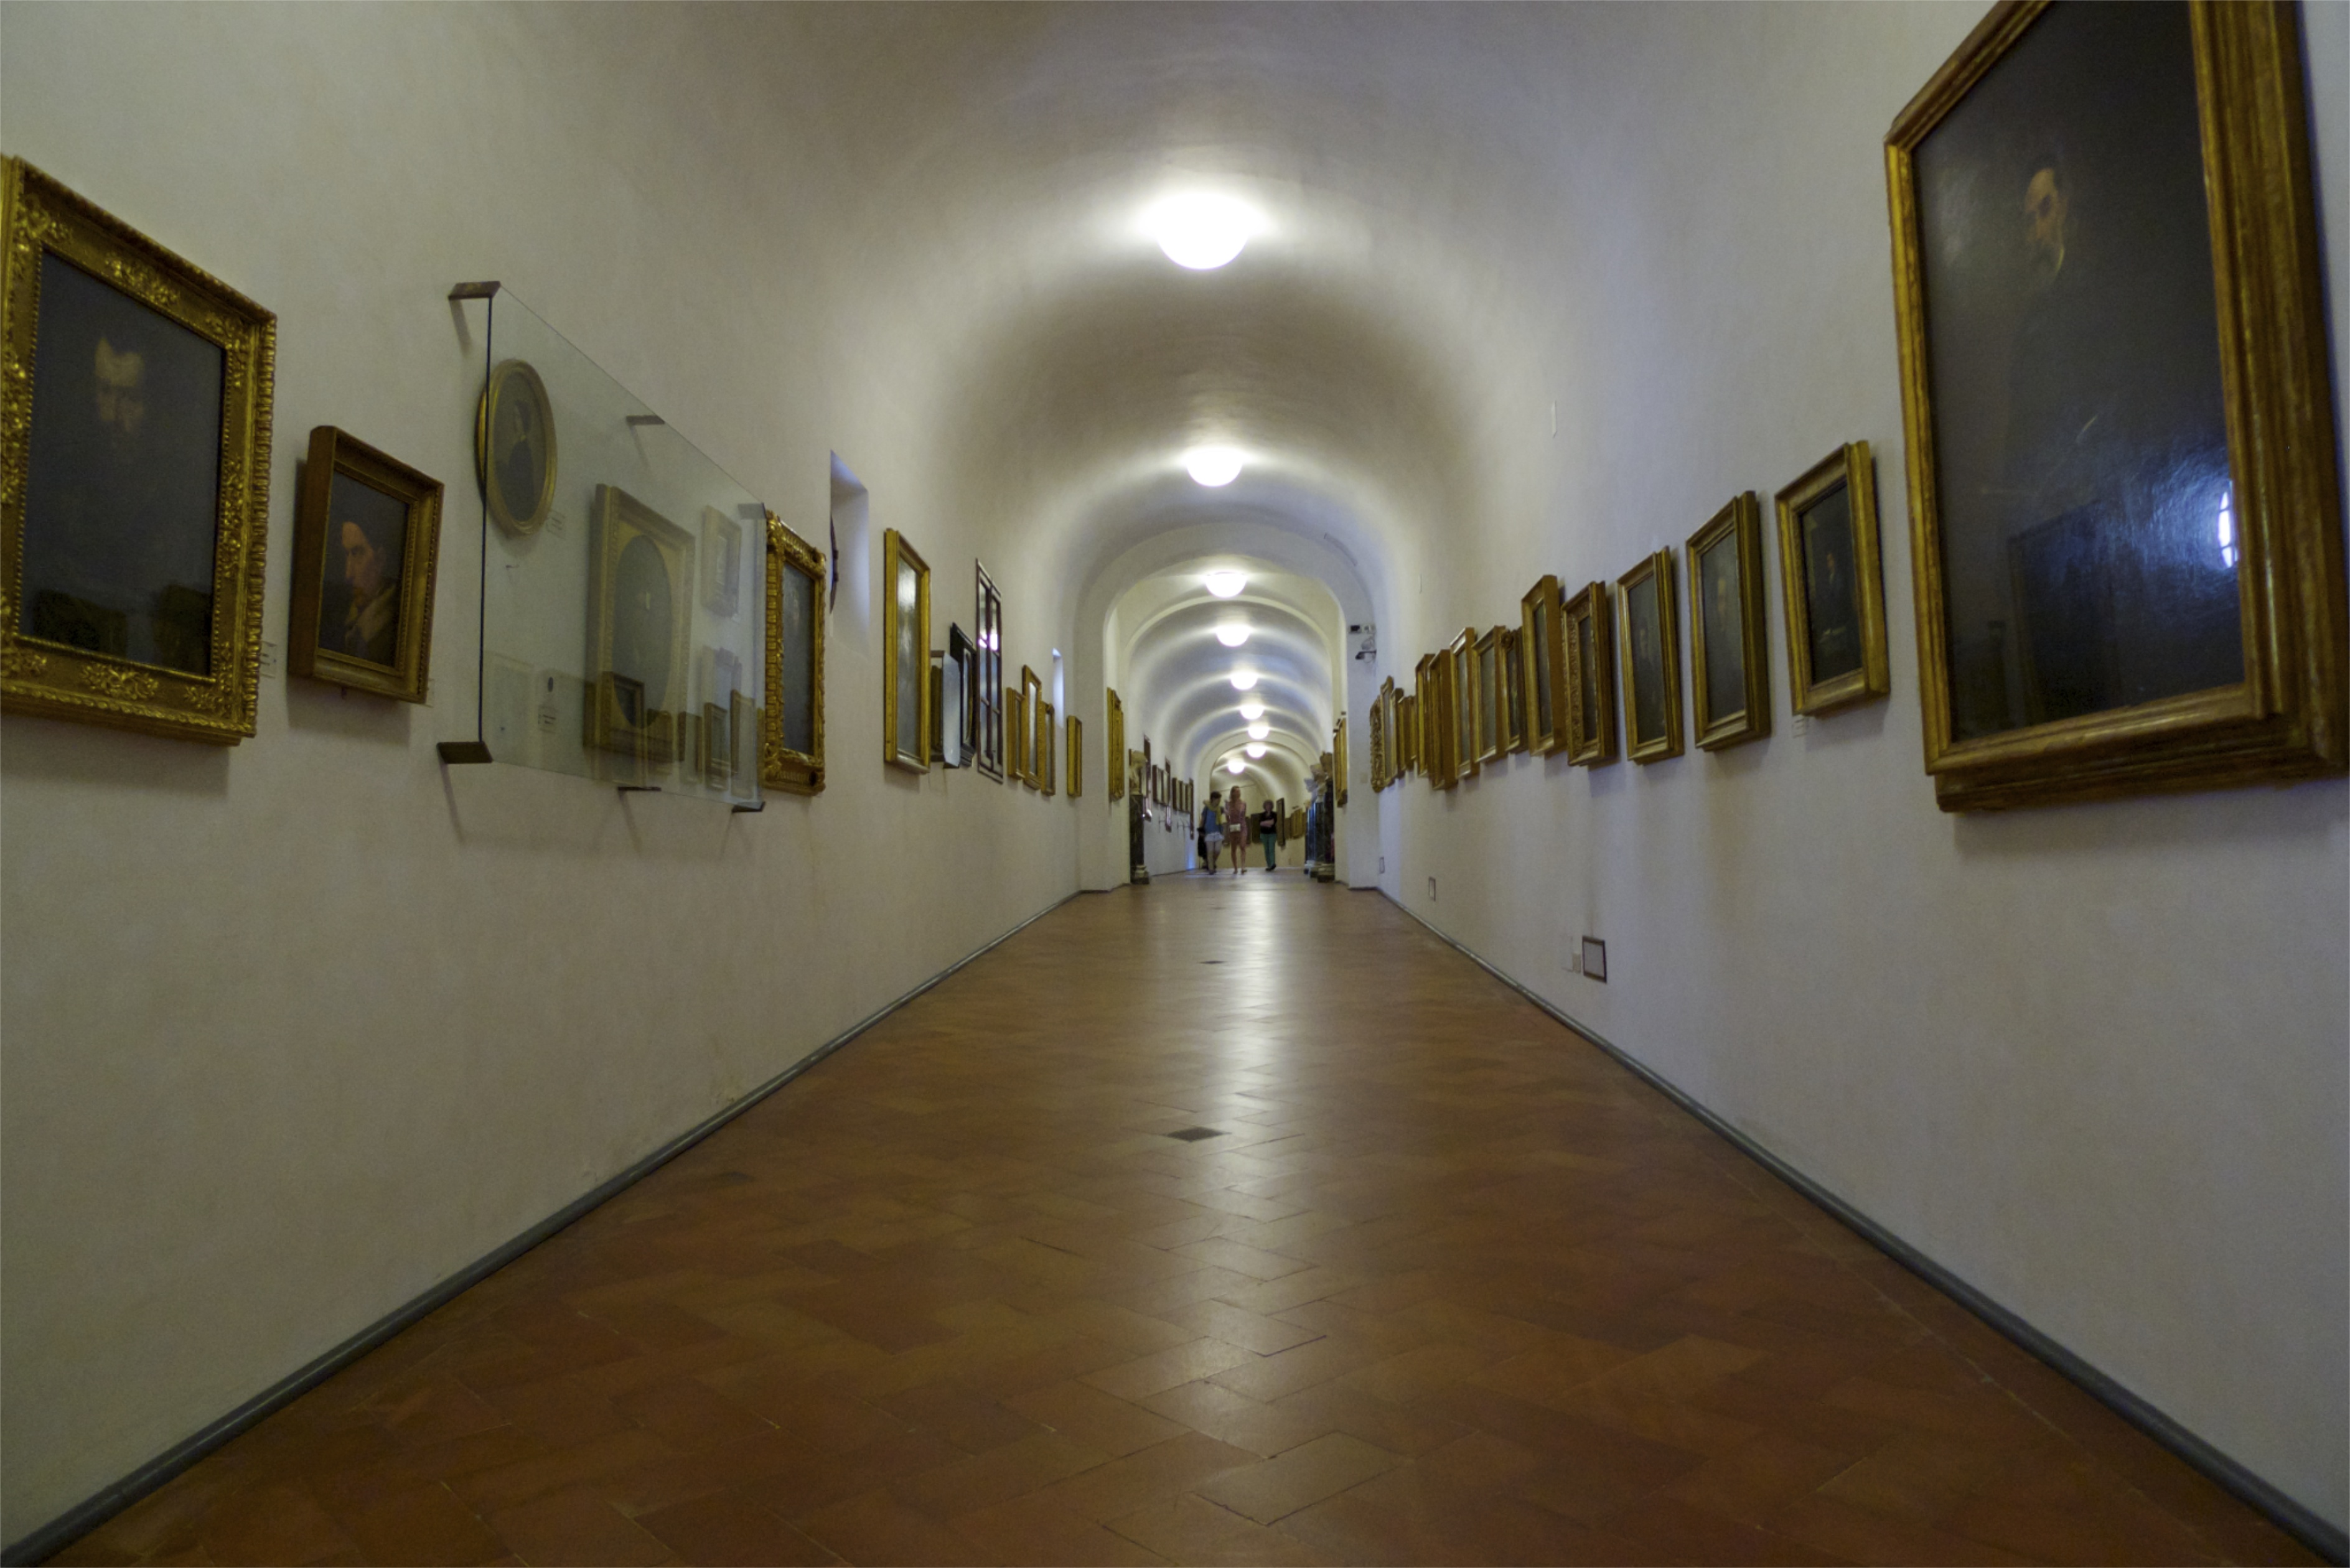 Inside the Vasari corridor [Photo credit: Darren & Brad on Flickr]